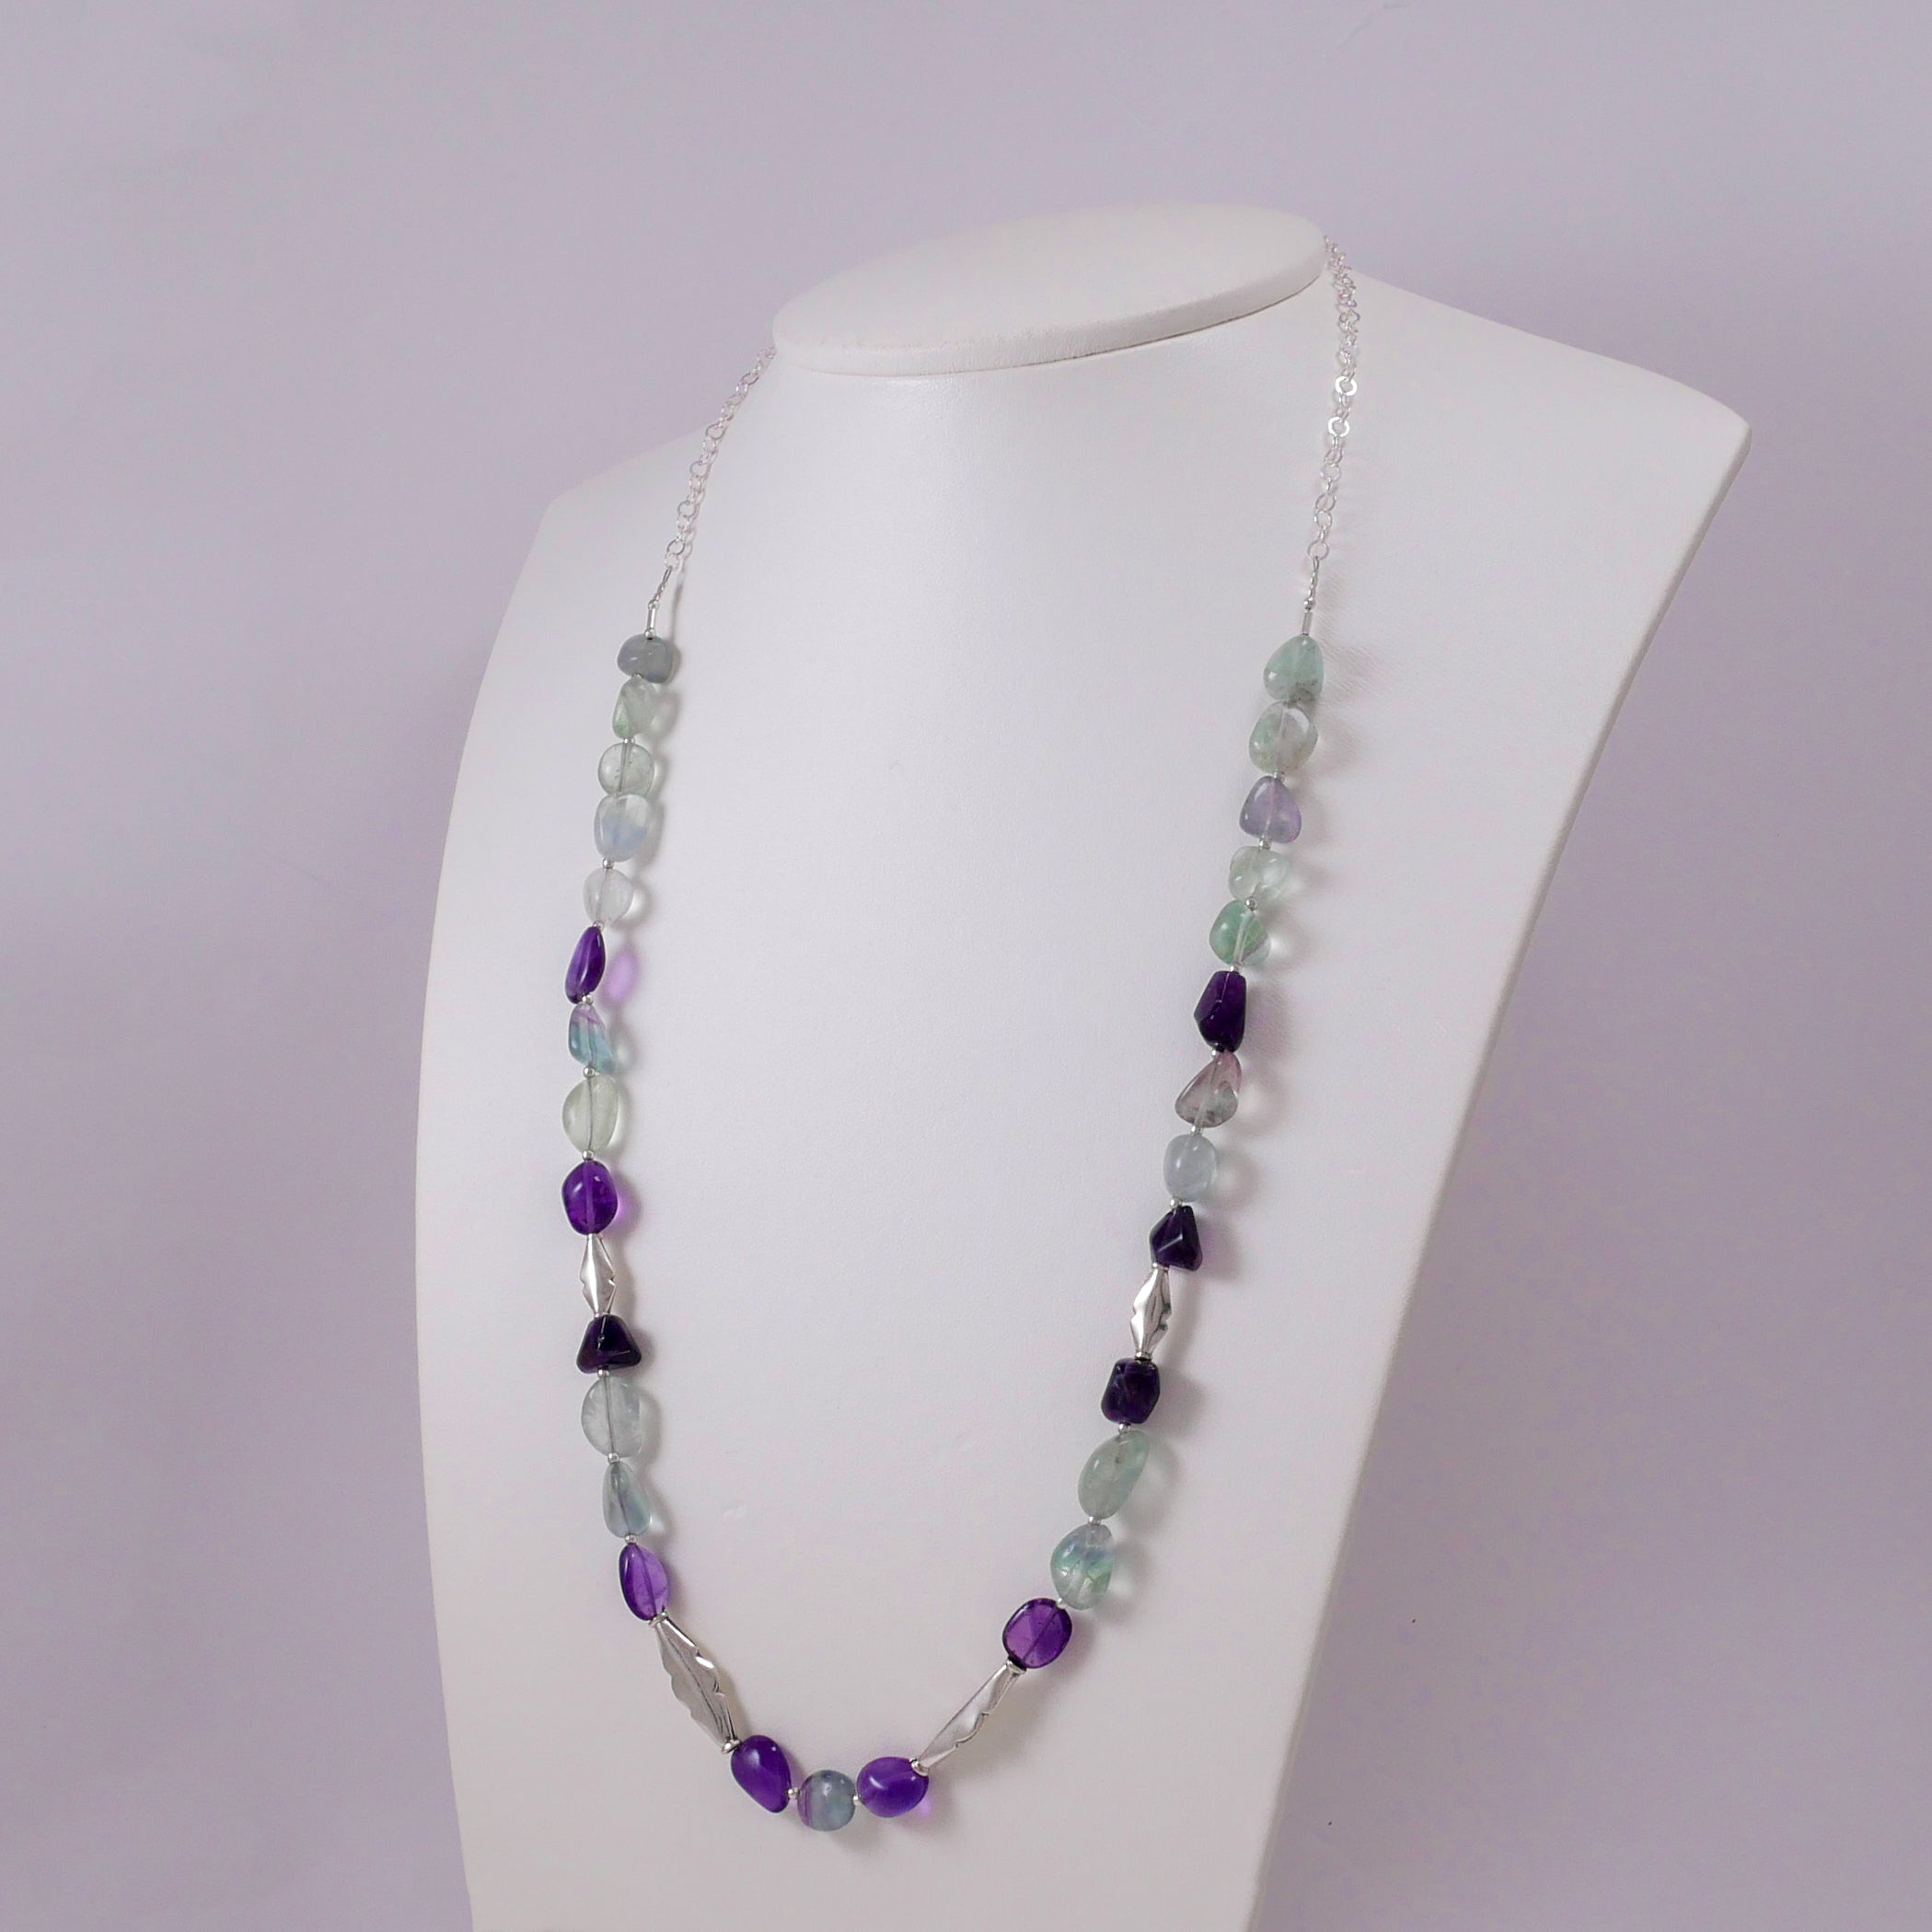 Amethysts, Fluorites, and Sterling Silver Necklace - Katerina Roukouna